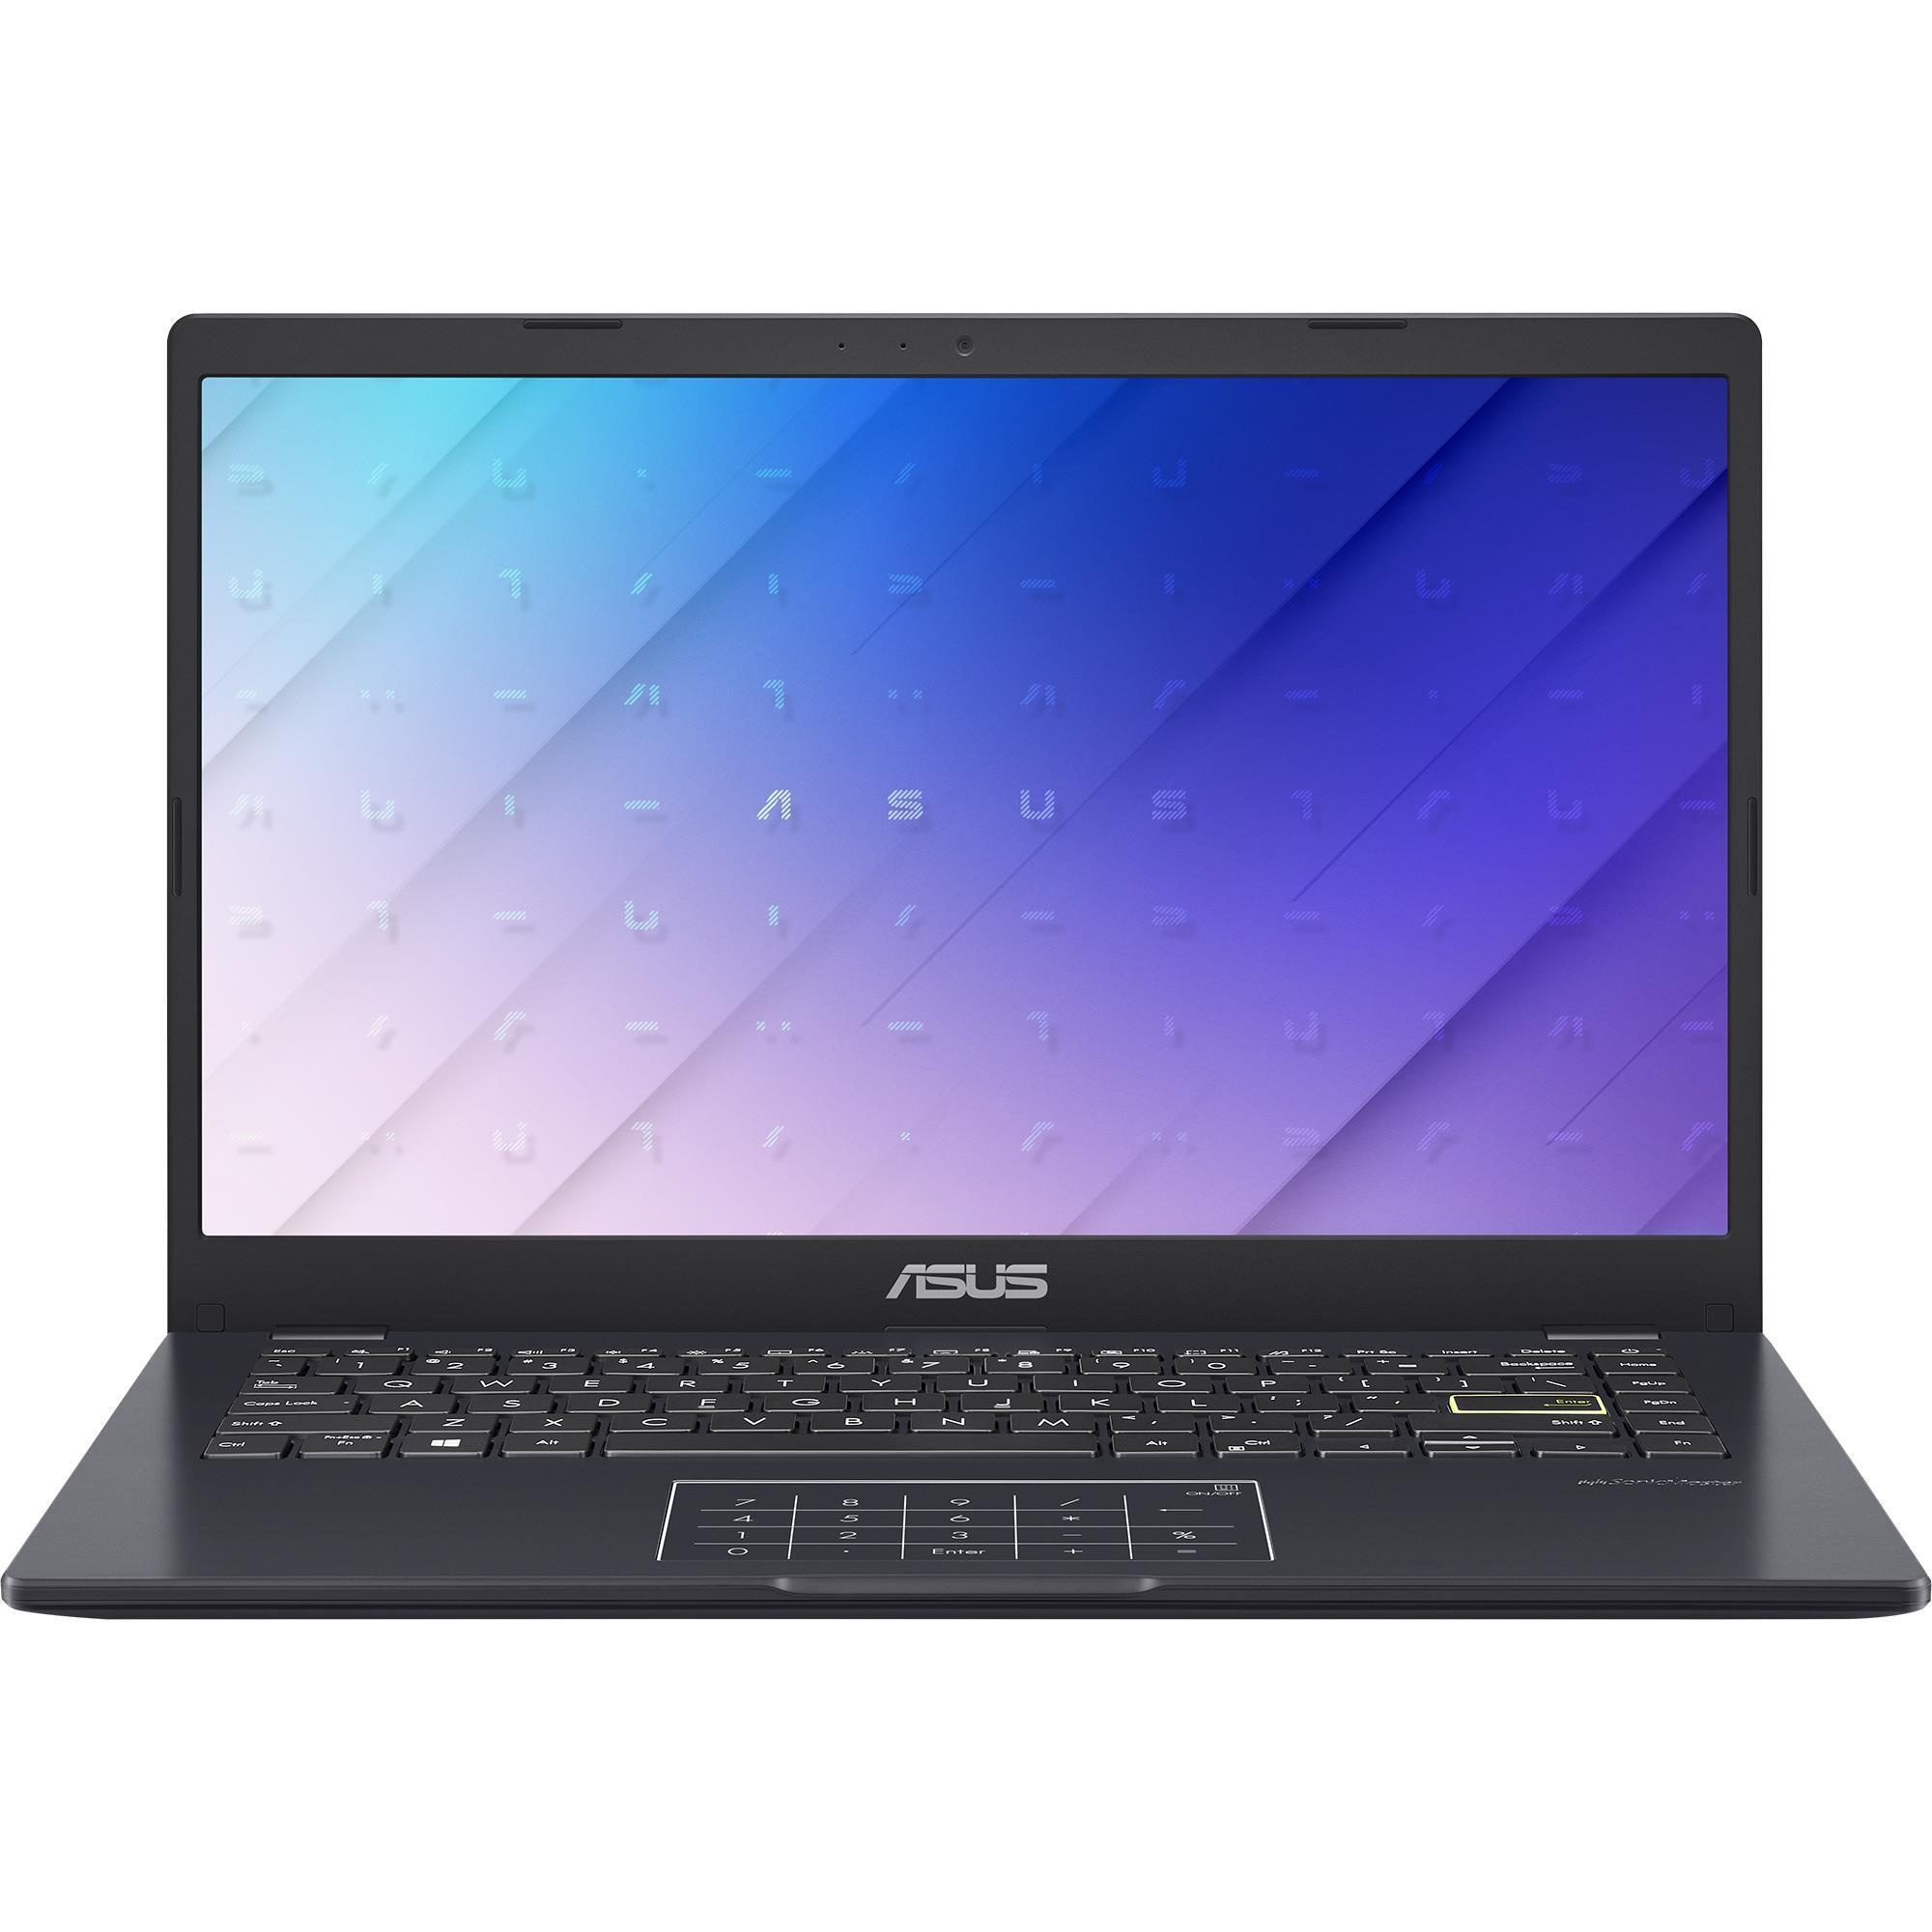 Asus E410 14″ HD Laptop (128GB)